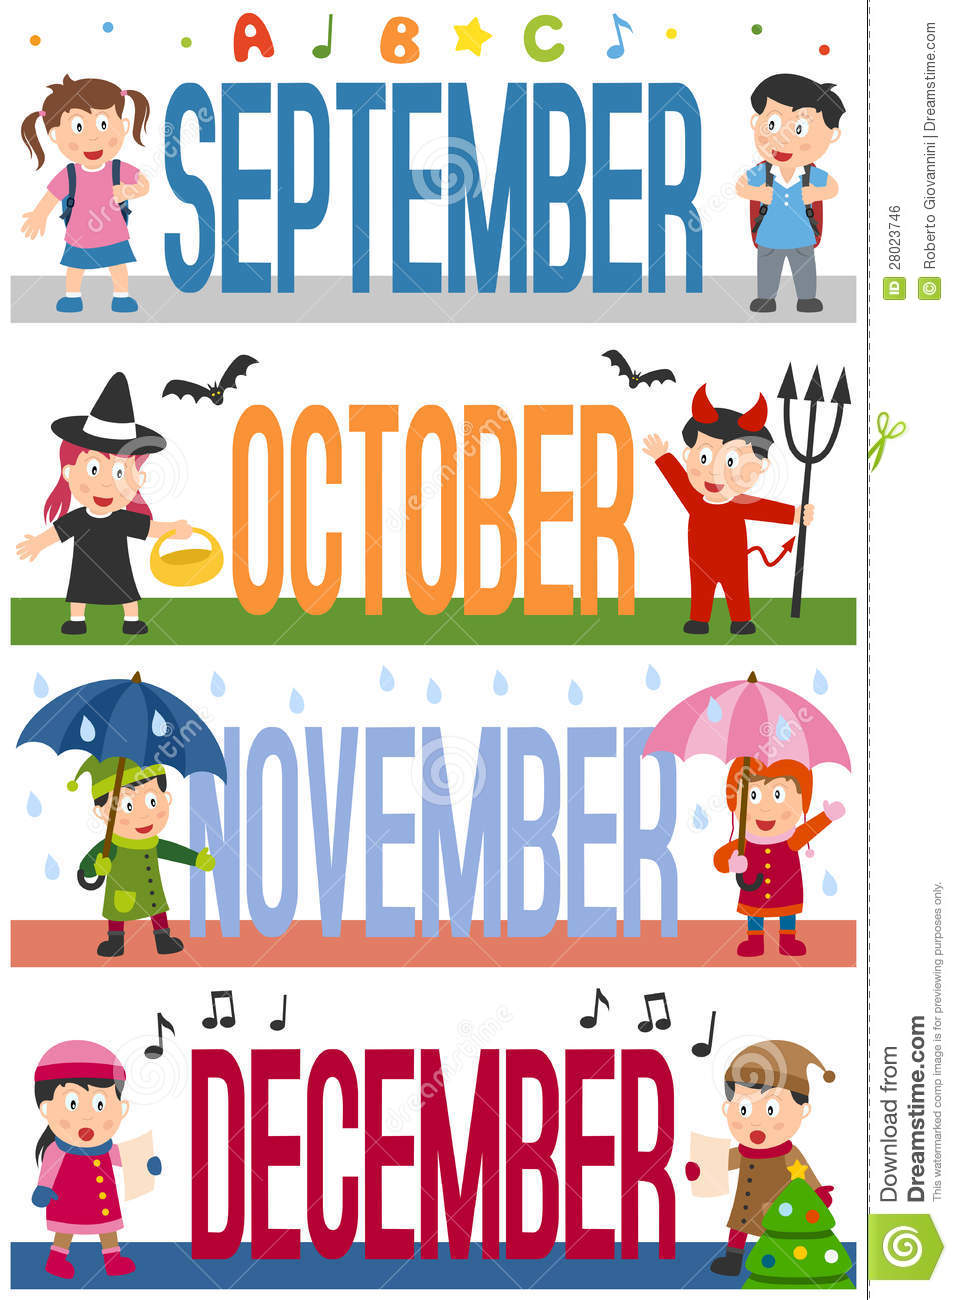 Royalty Free Stock Image Months Banners Kids 3 Image28023746 on March Bulletin Board Cute